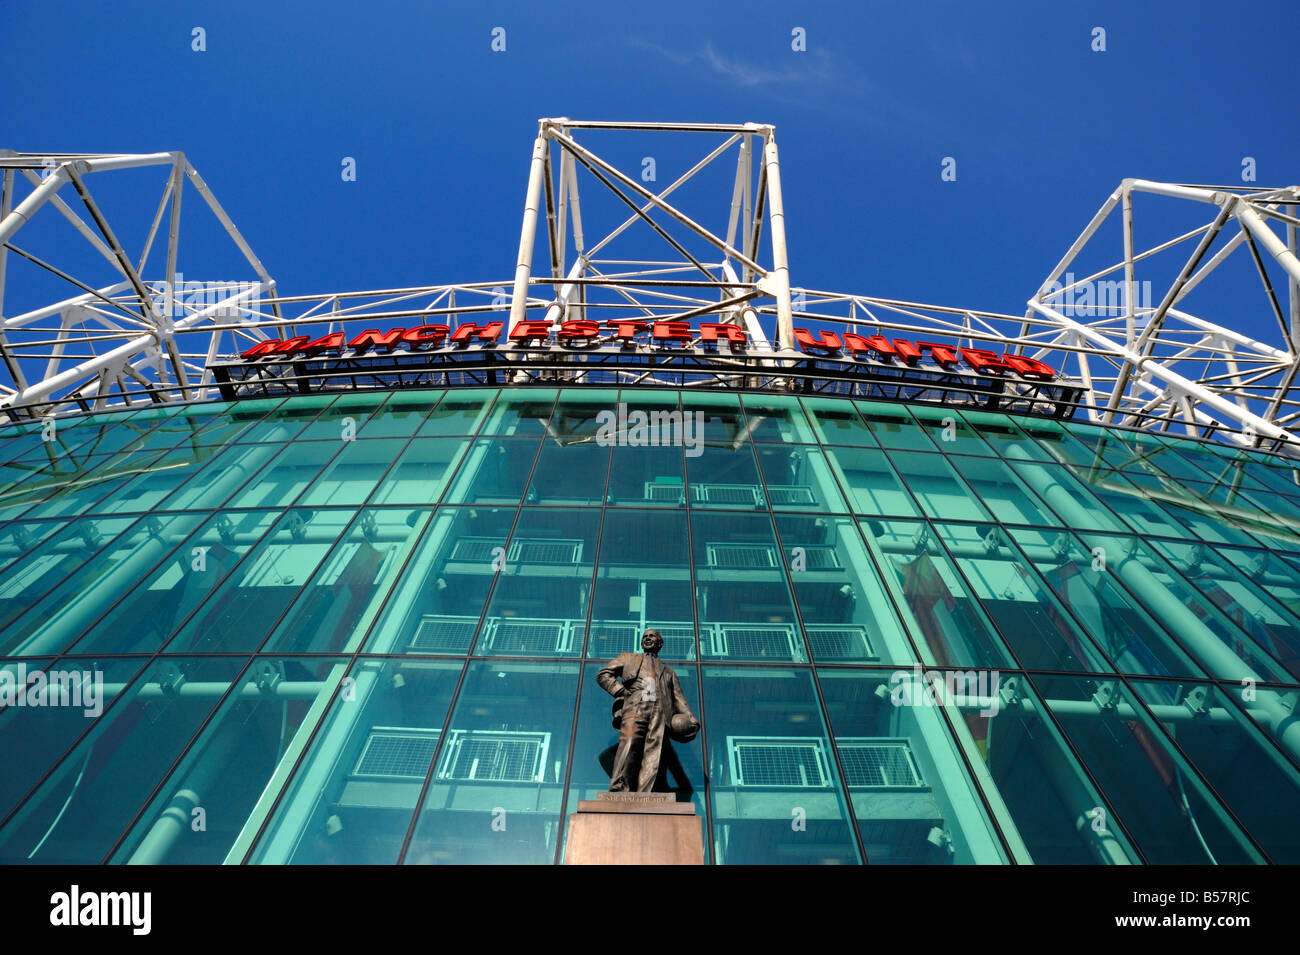 Manchester United Football Club Stadium, Old Trafford, Manchester, England, United Kingdom, Europe - Stock Image